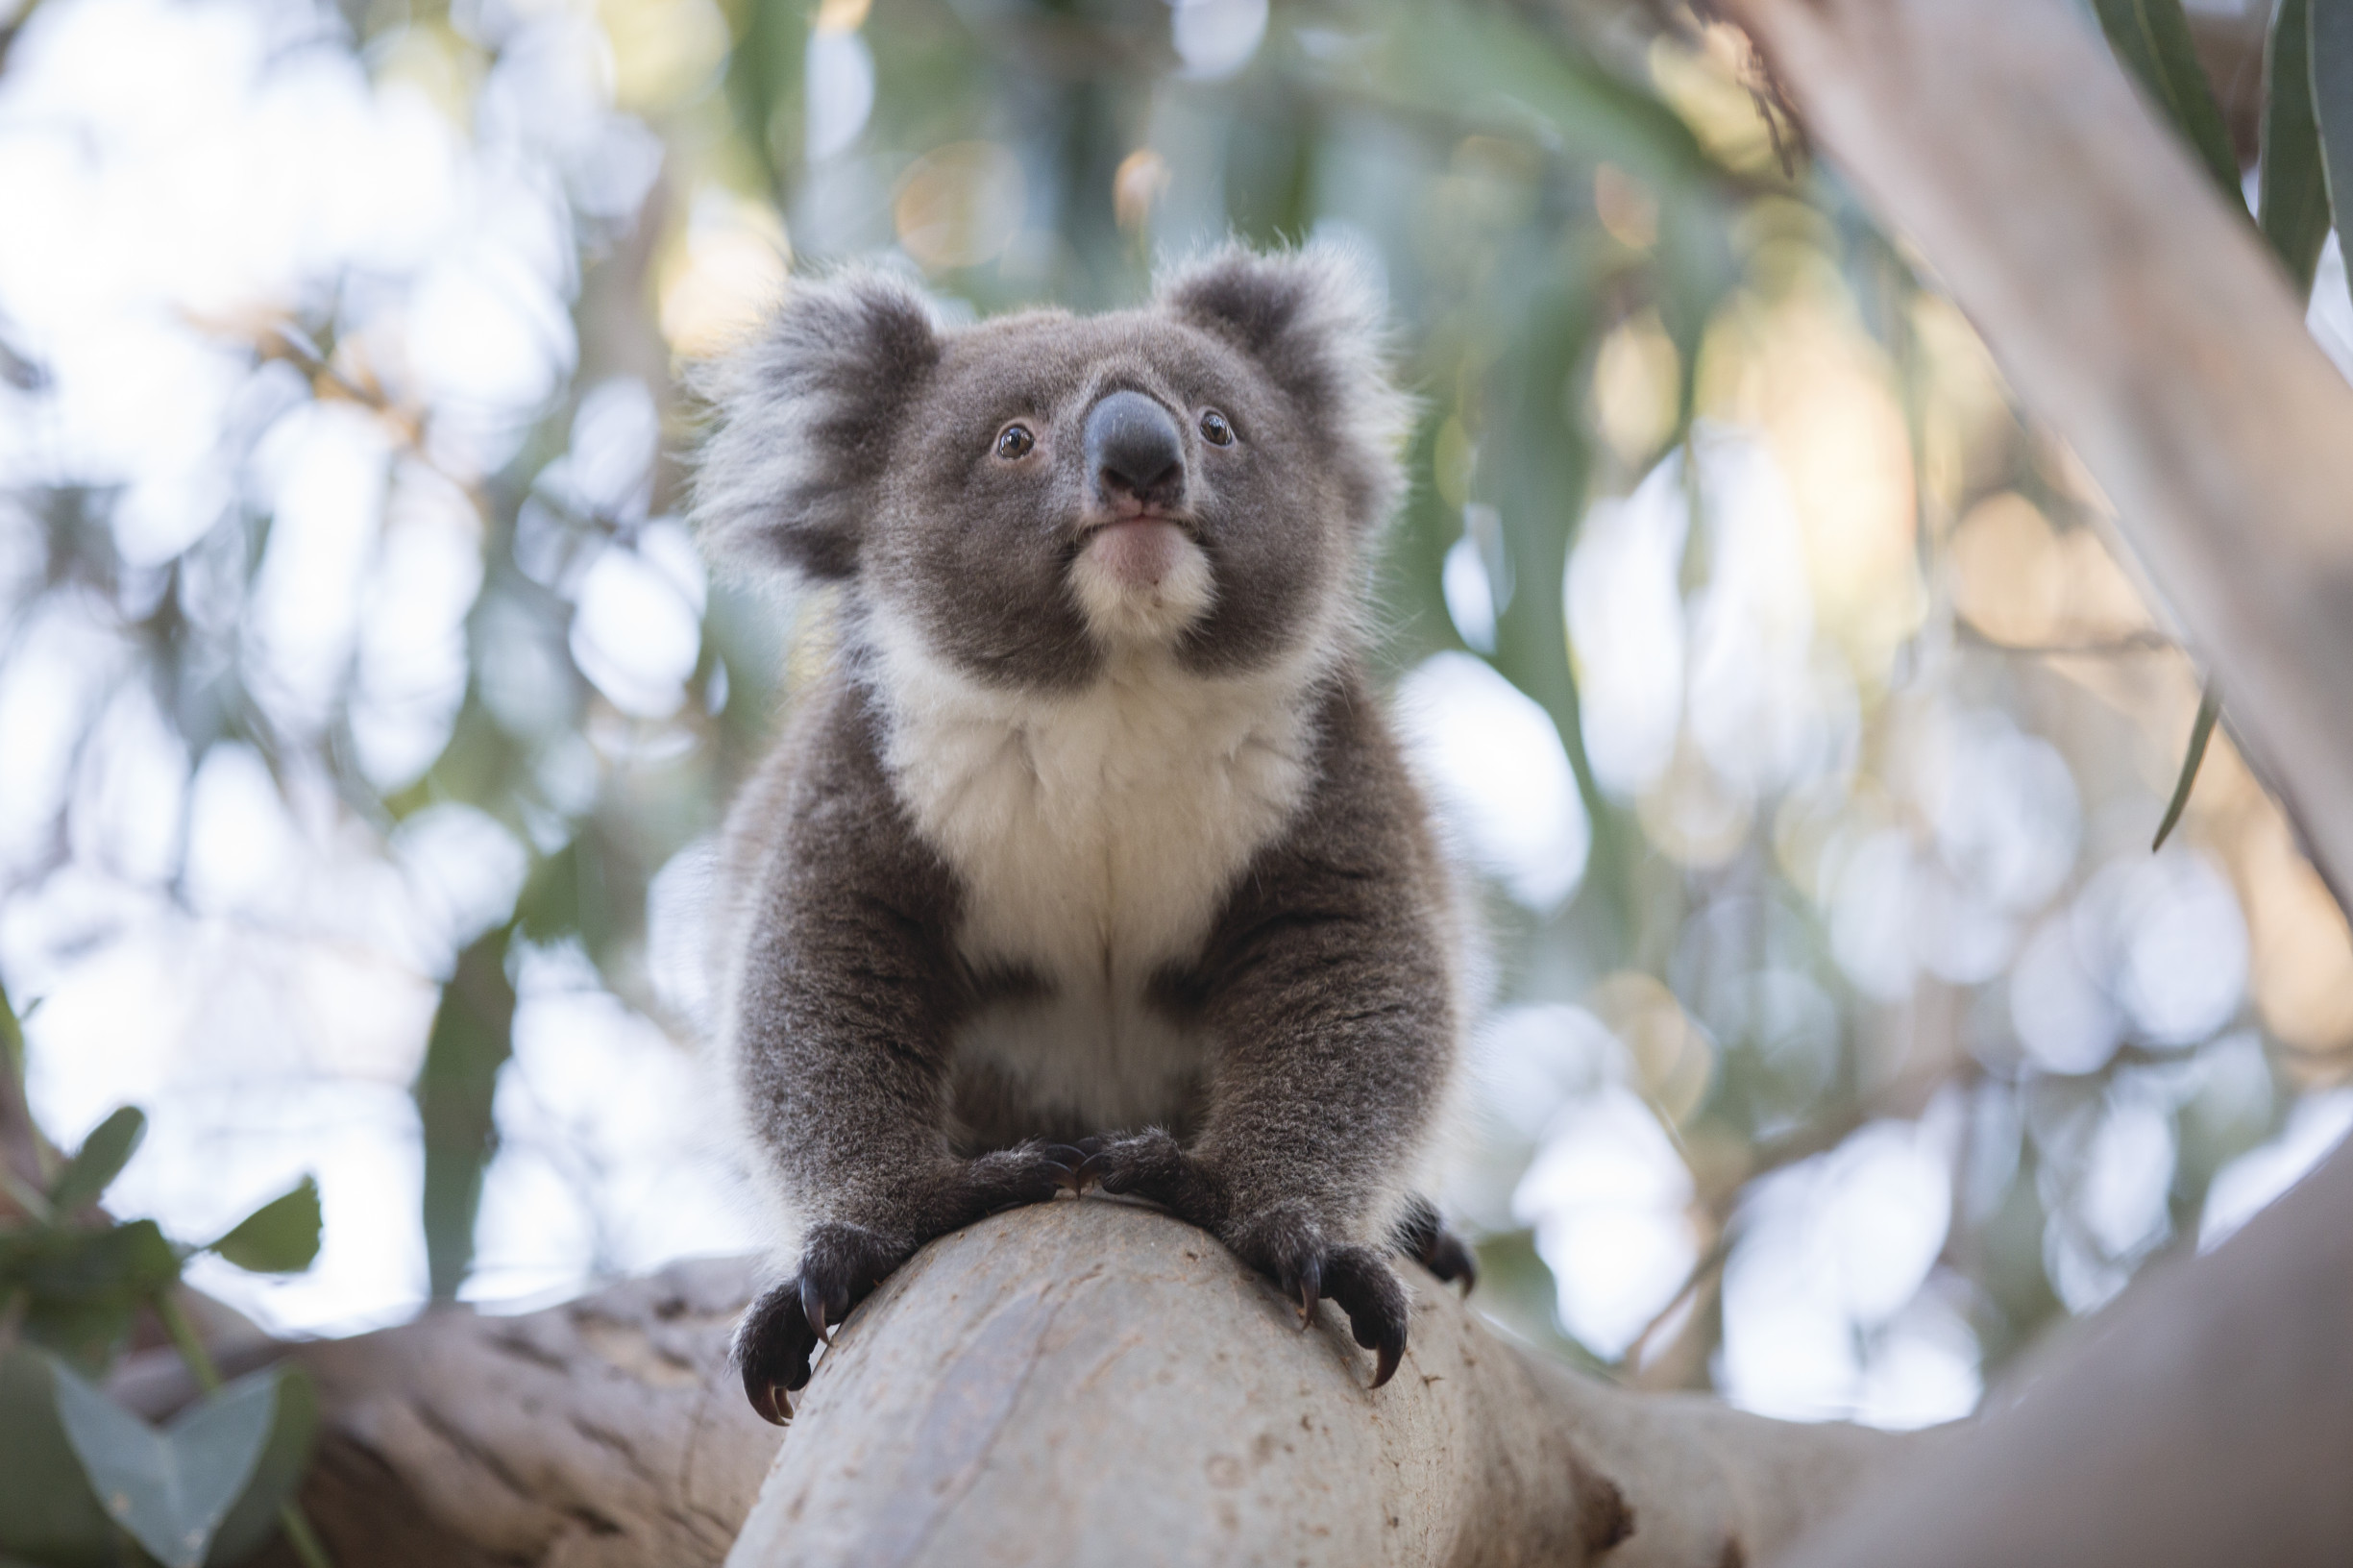 How to help Australian wildlife. Visit koalas on Australian Wildlife Adventures.